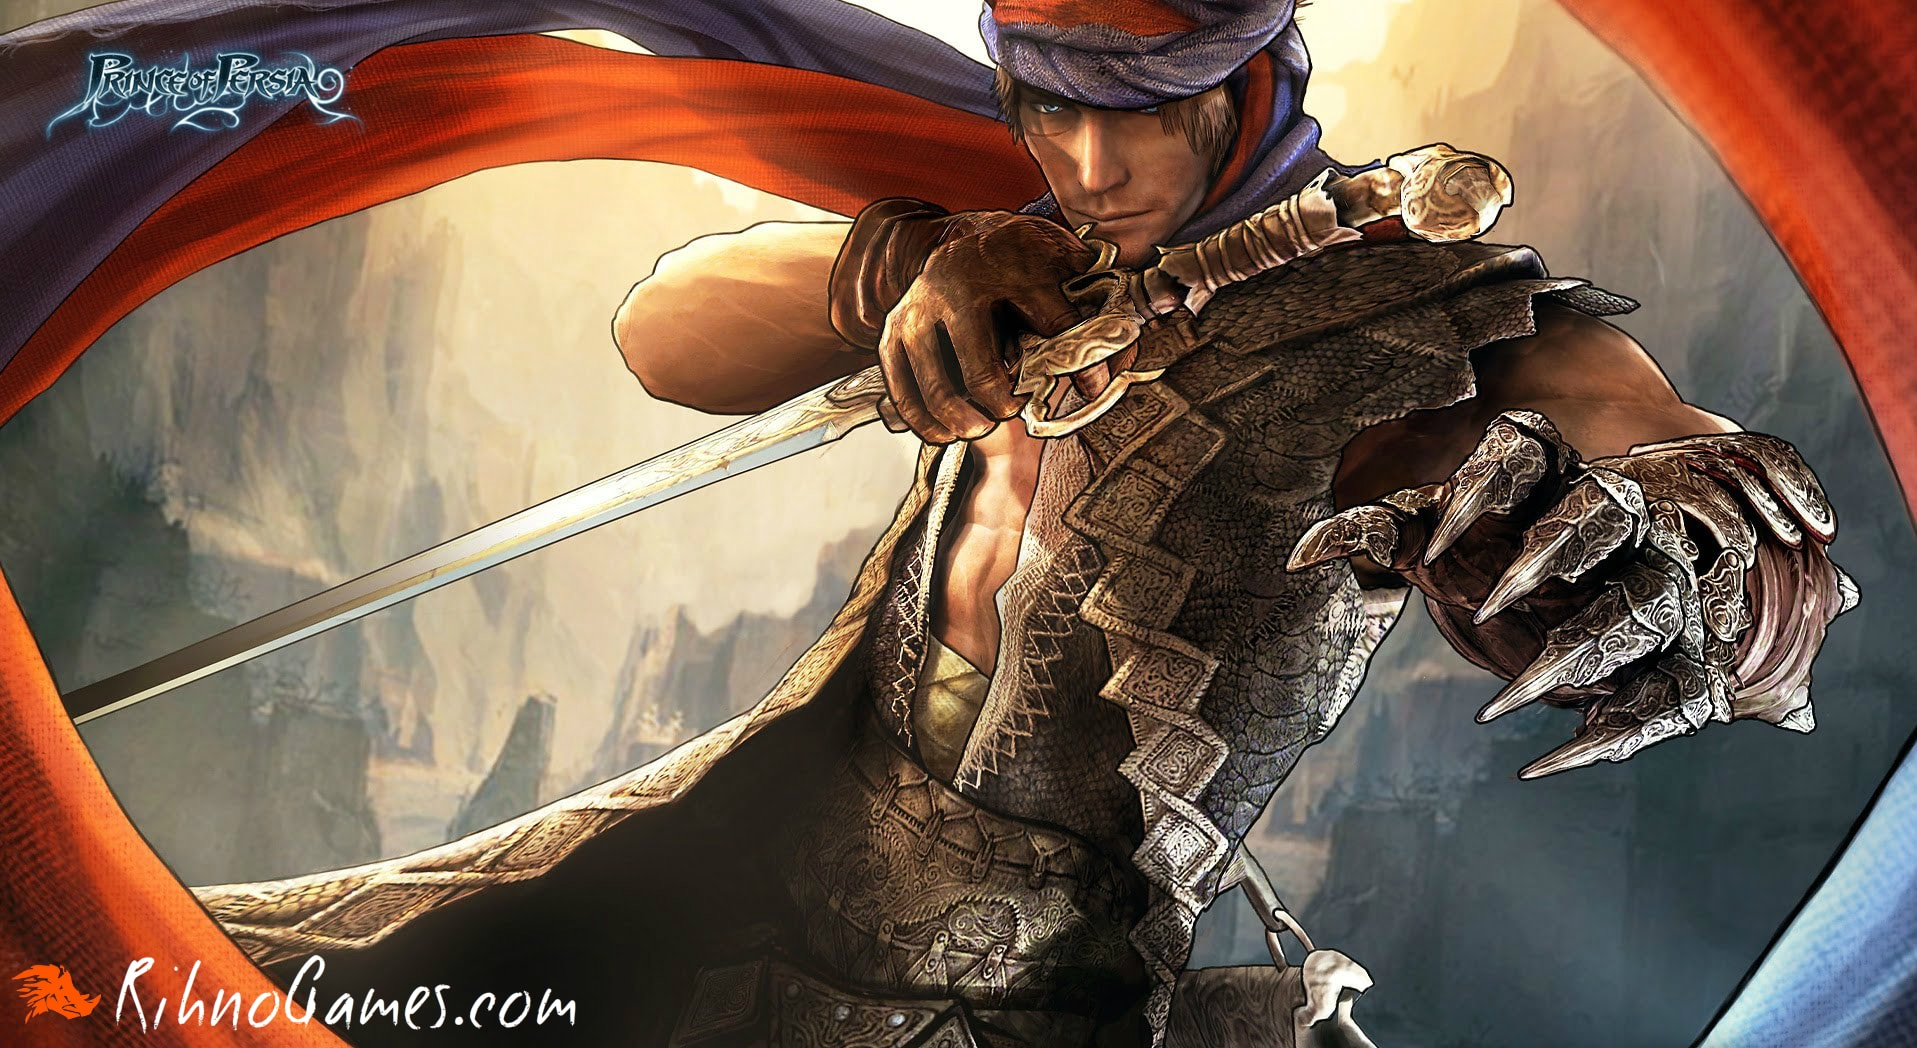 Prince of Persia 2008 Download